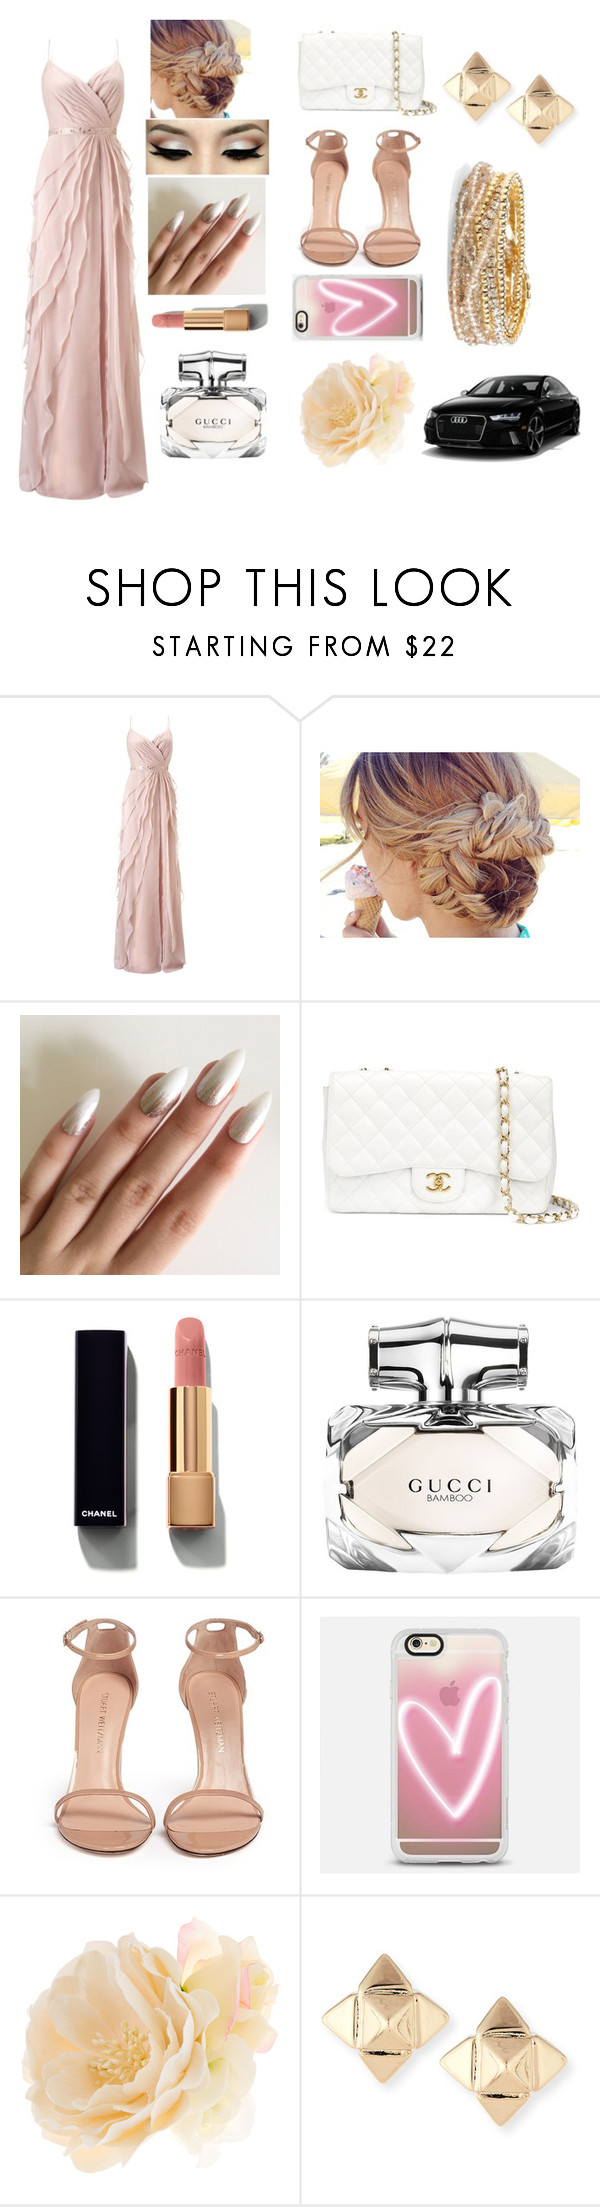 """""""Untitled #180"""" by charlotte0305 ❤ liked on Polyvore featuring Adrianna Papell, Chanel, Gucci, Stuart Weitzman, Casetify, Accessorize, Valentino and Torrid"""